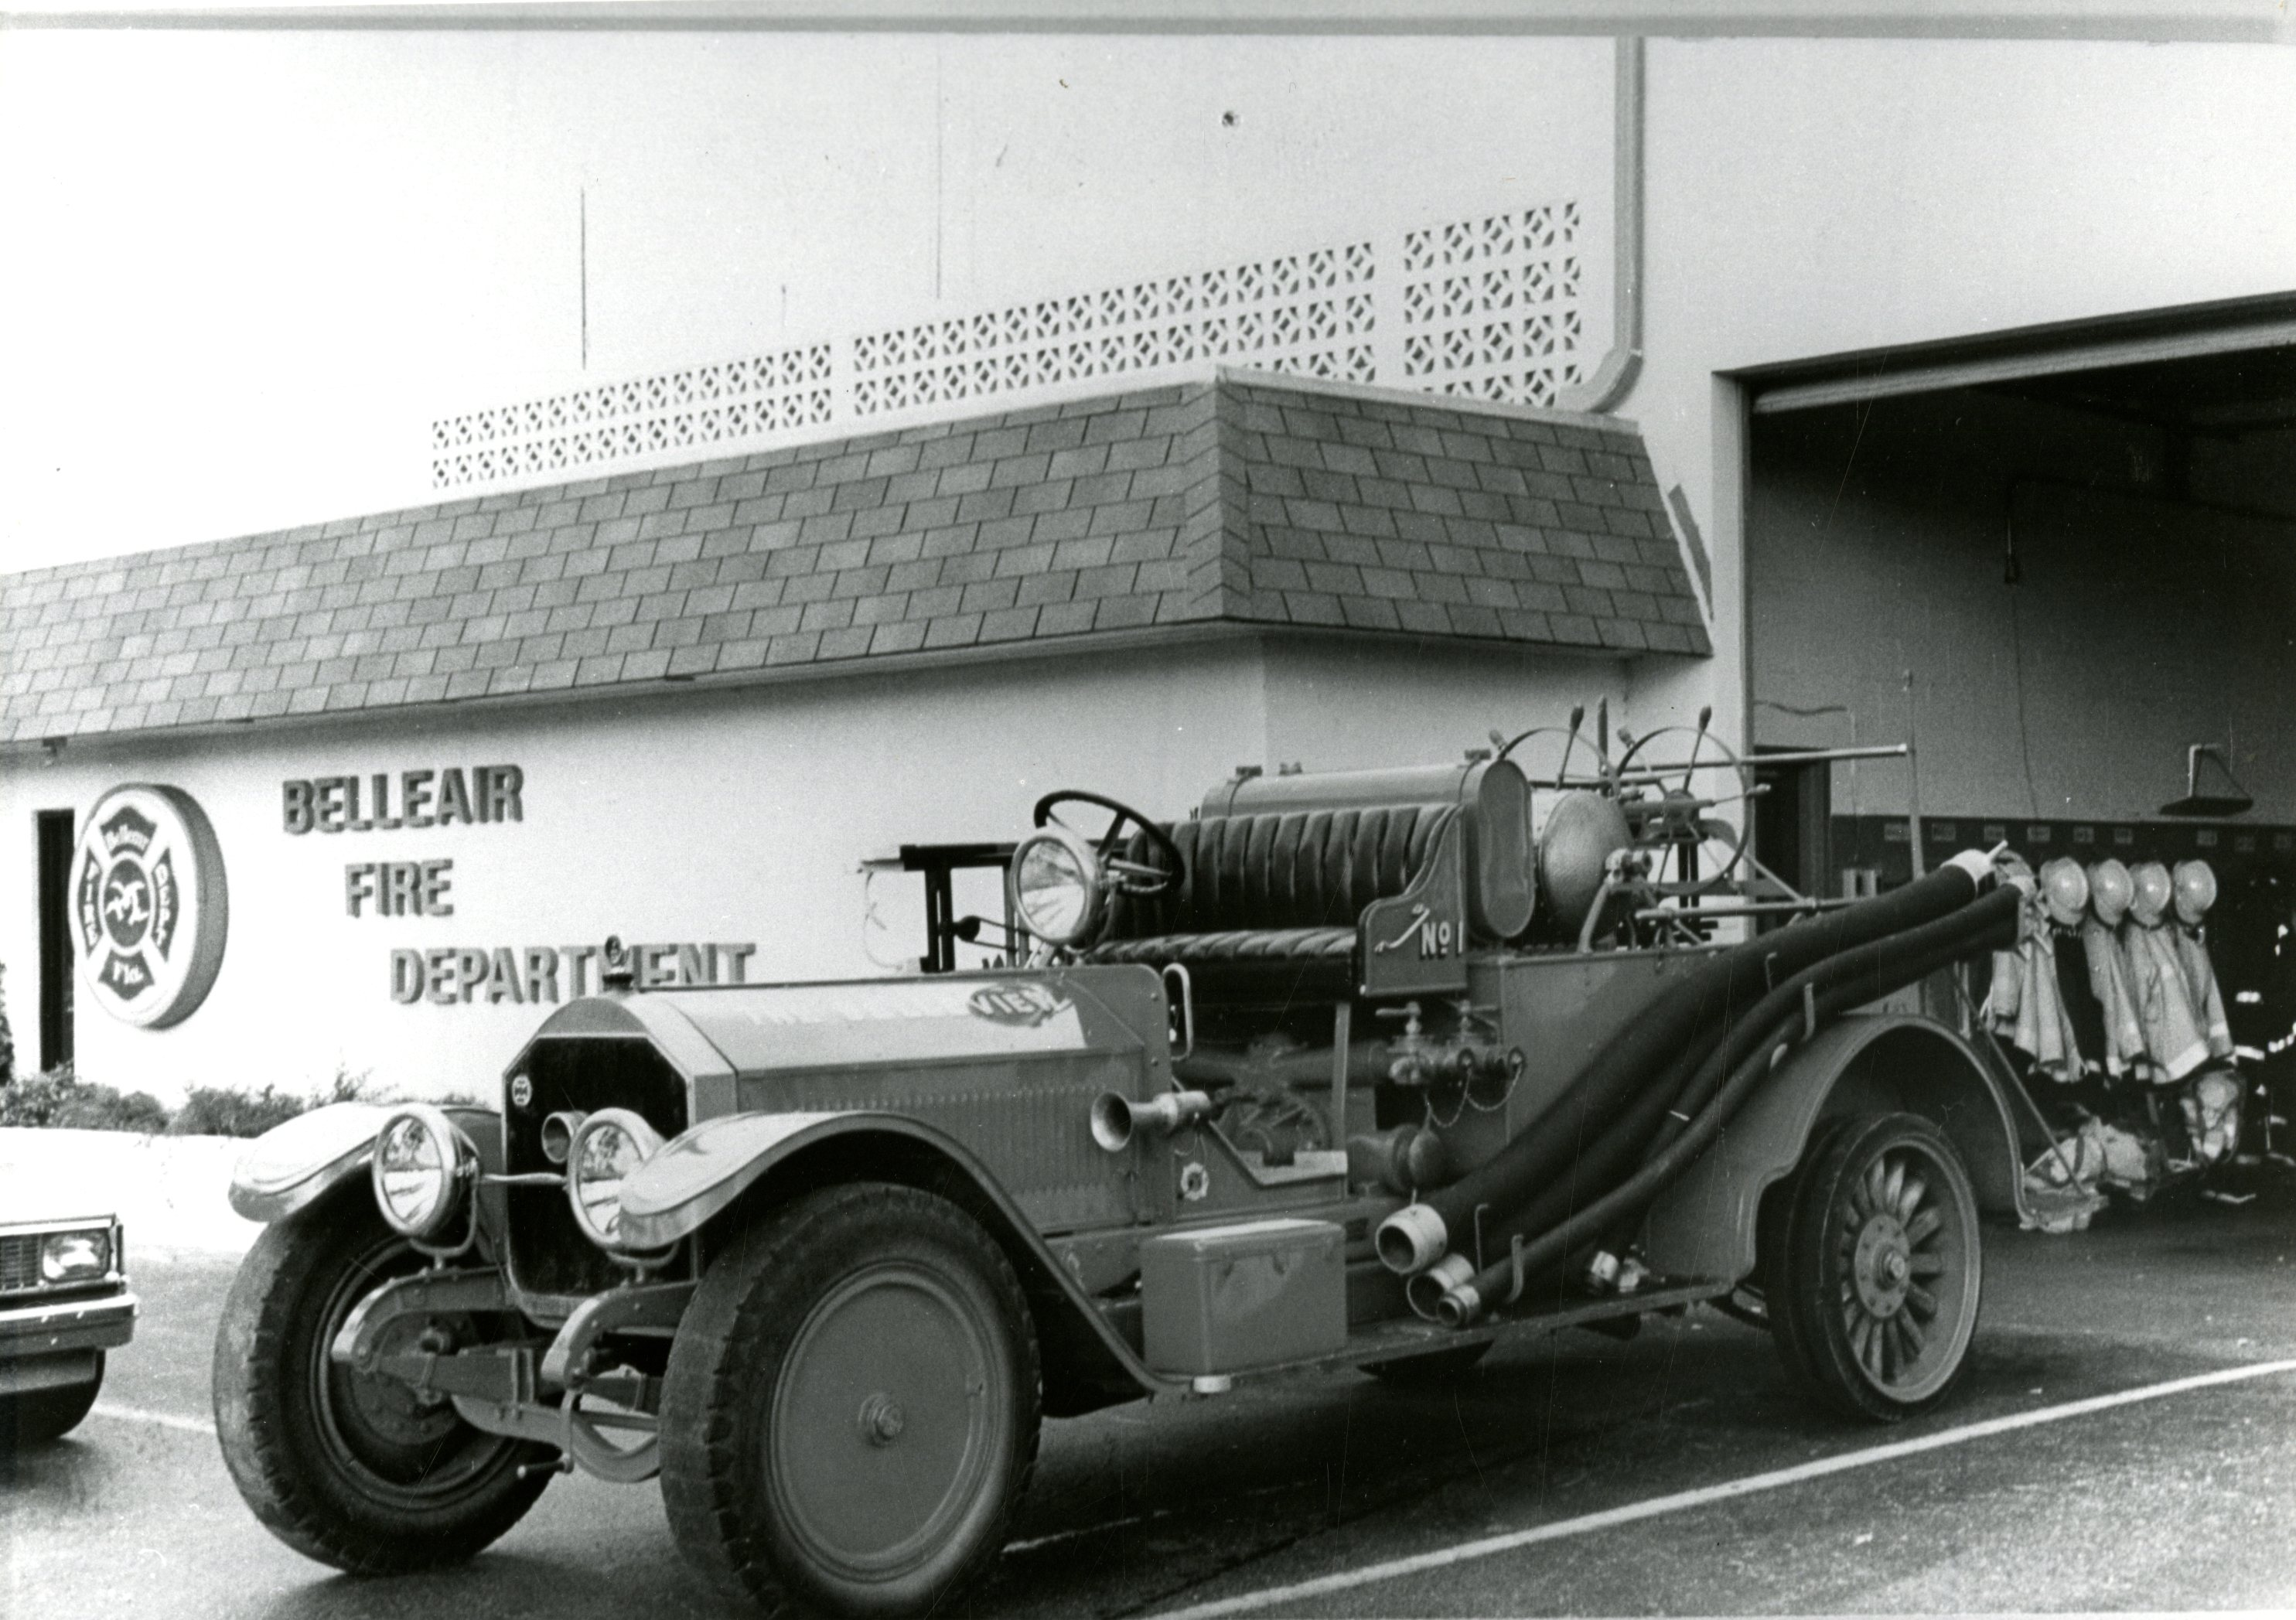 1919 La France fire engine at the Belleair Fire Department, Belleair, Florida, undated. This engine is now at Heritage Village in Largo, Florida.